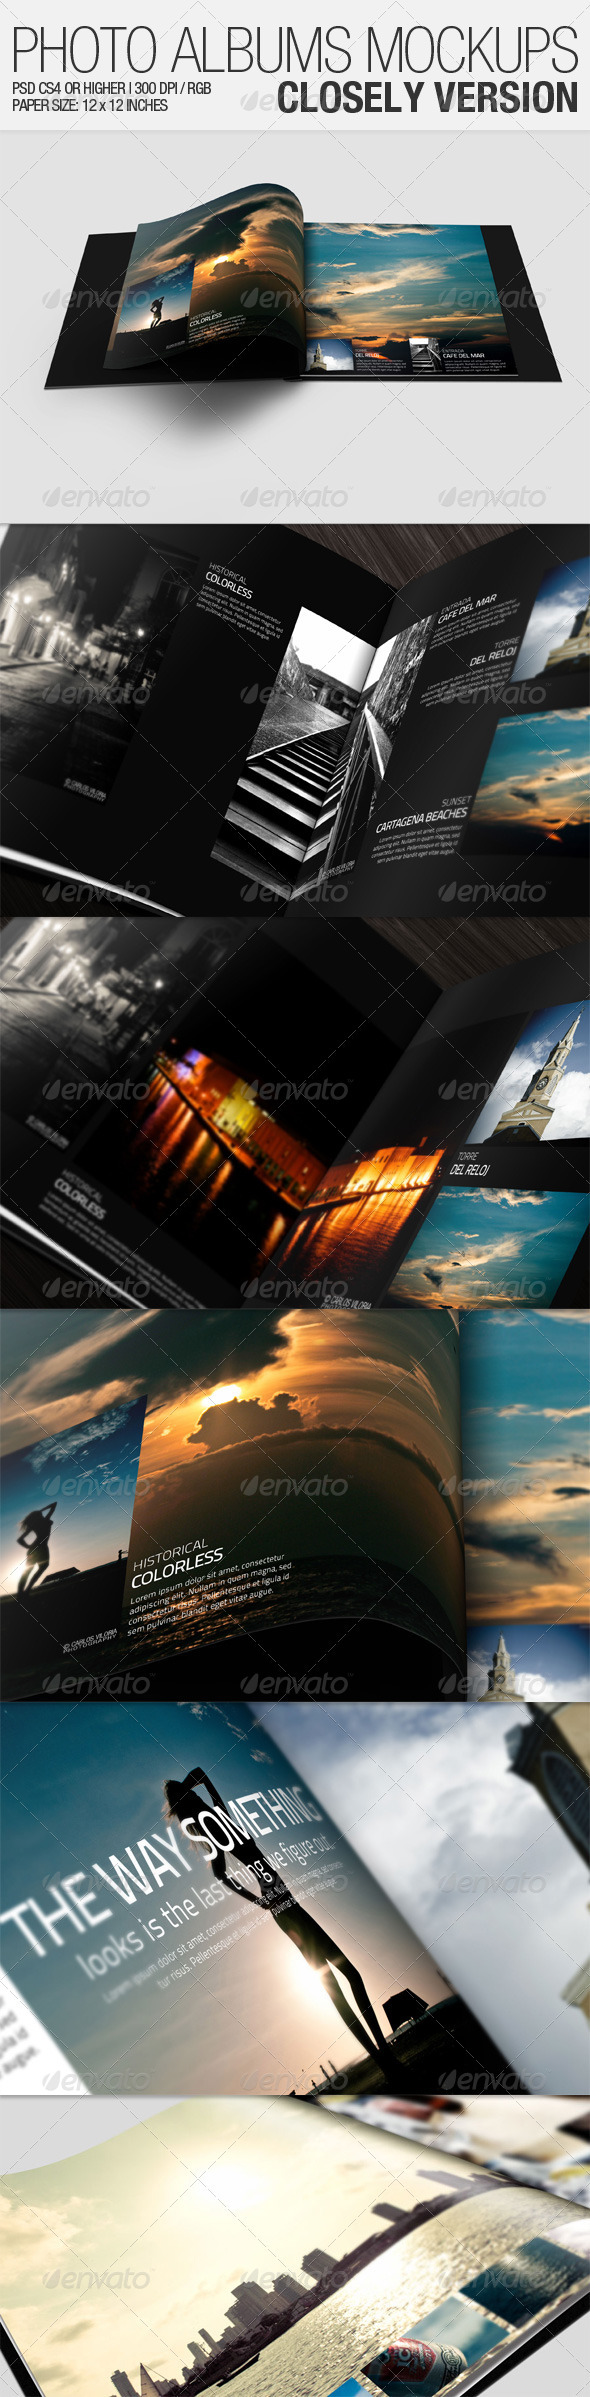 GraphicRiver Photo Albums Mockups Closely Version 981690